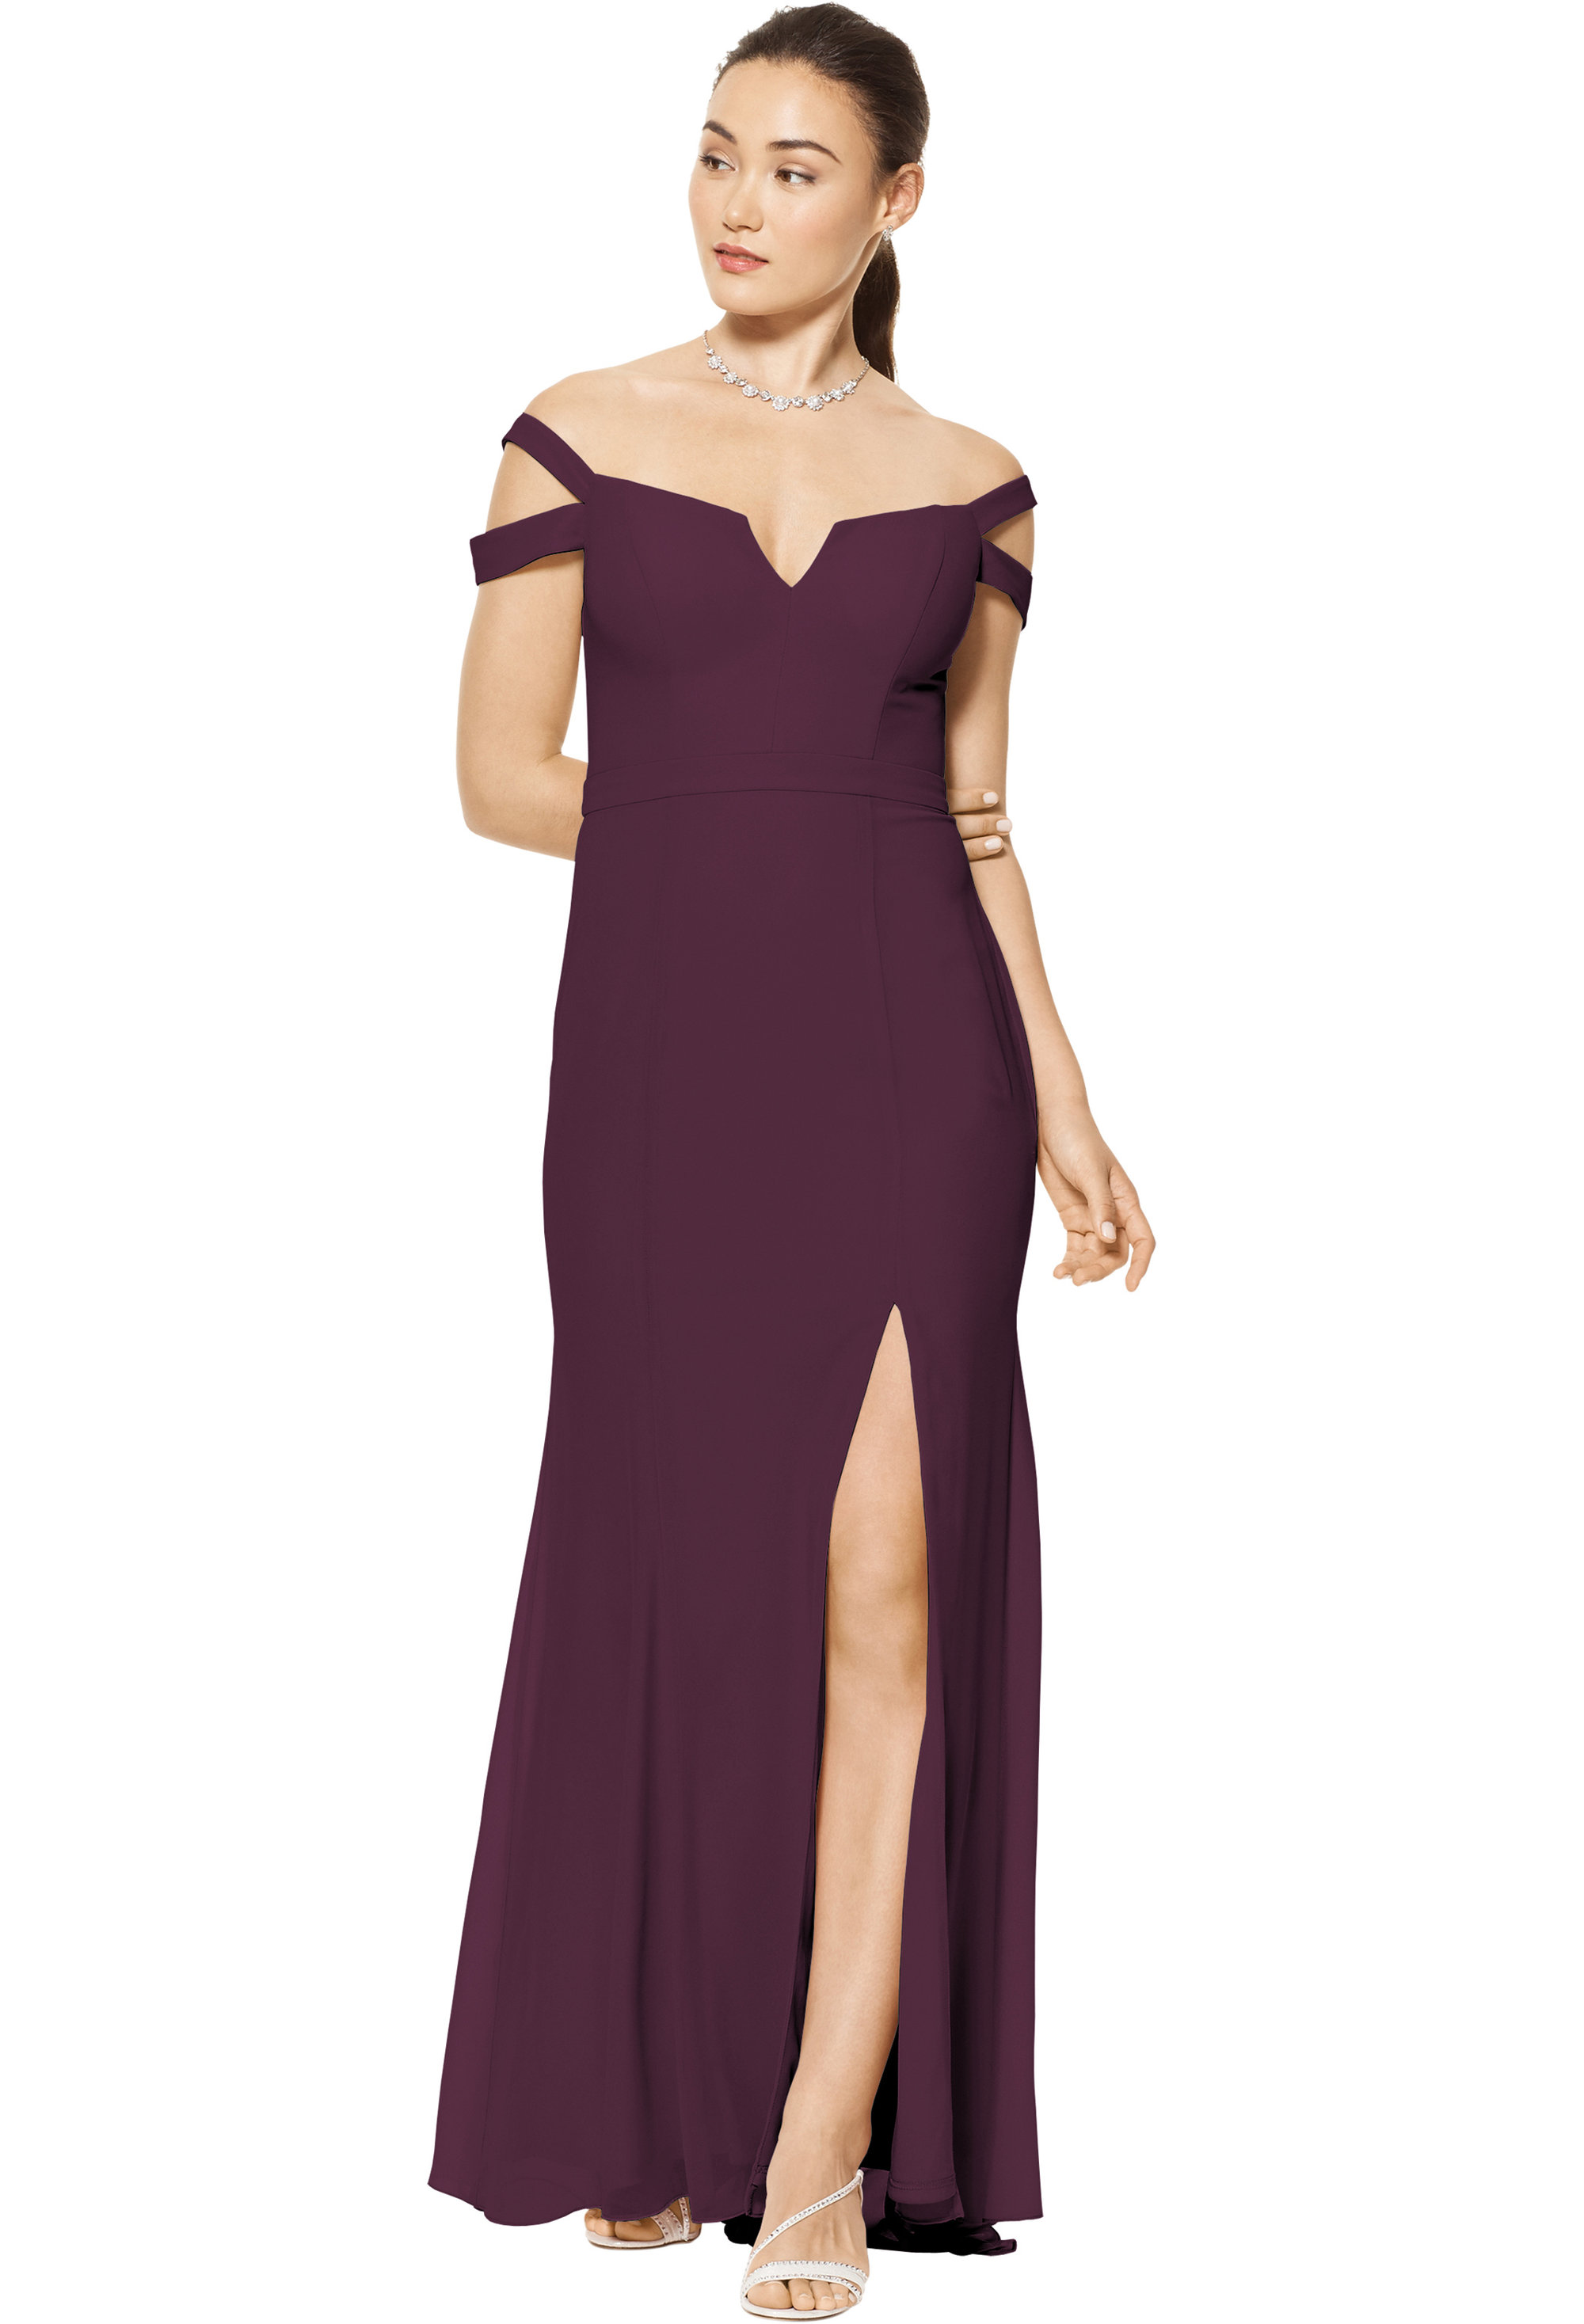 Bill Levkoff EGGPLANT Chiffon Off The Shoulder A-line gown, $158.00 Front